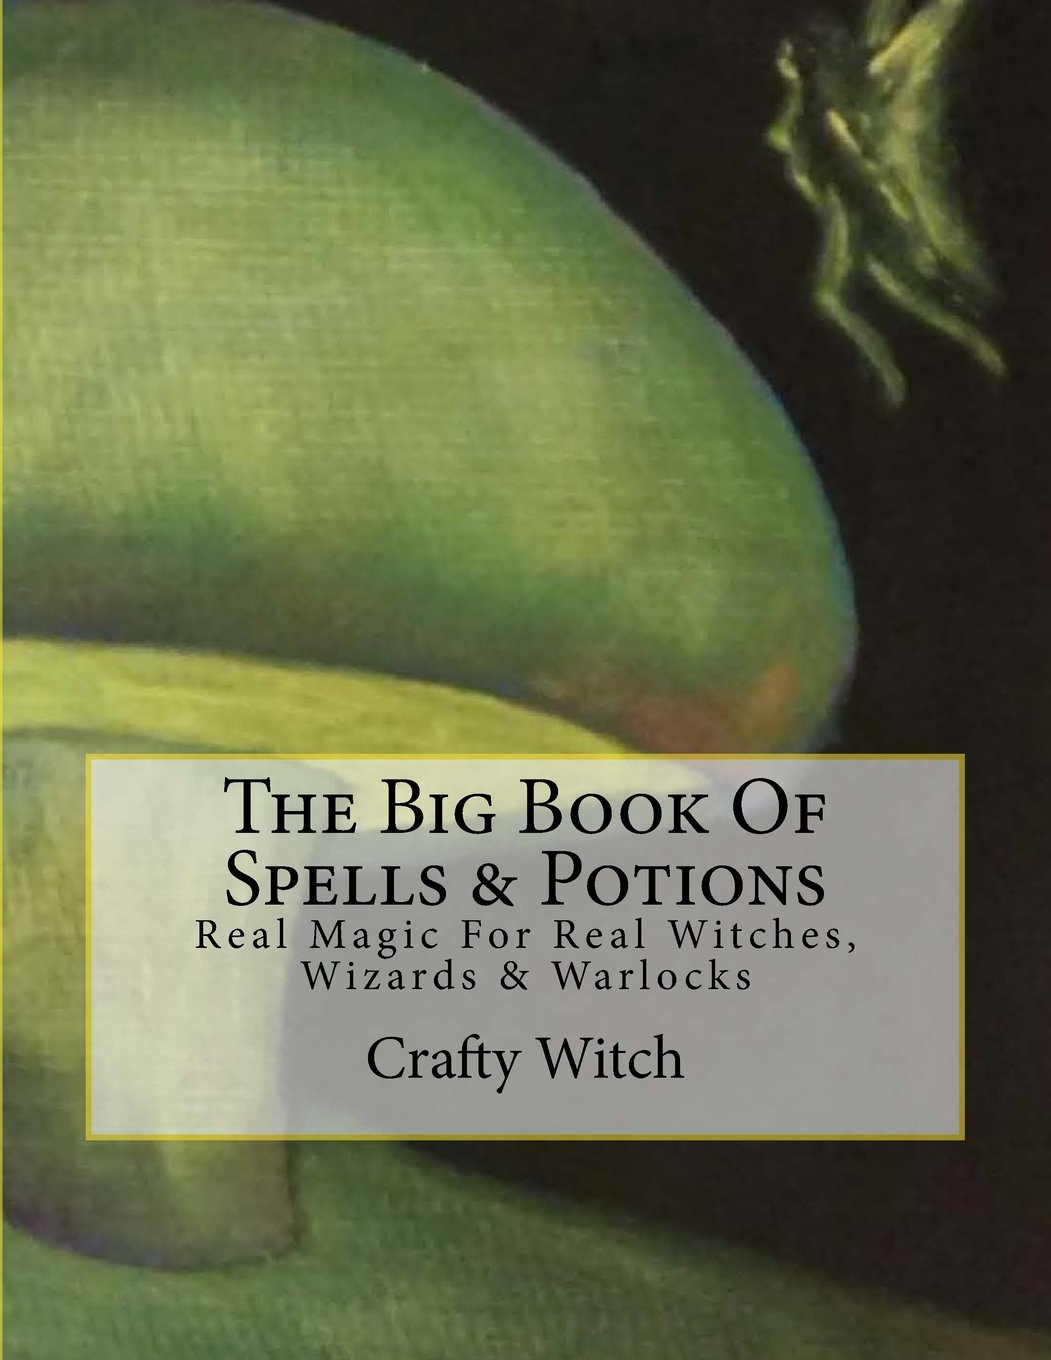 The Big Book Of Spells Potions Real Magic For Real Witches Wizards Warlocks Witch Crafty 9781547038947 Amazon Com Books